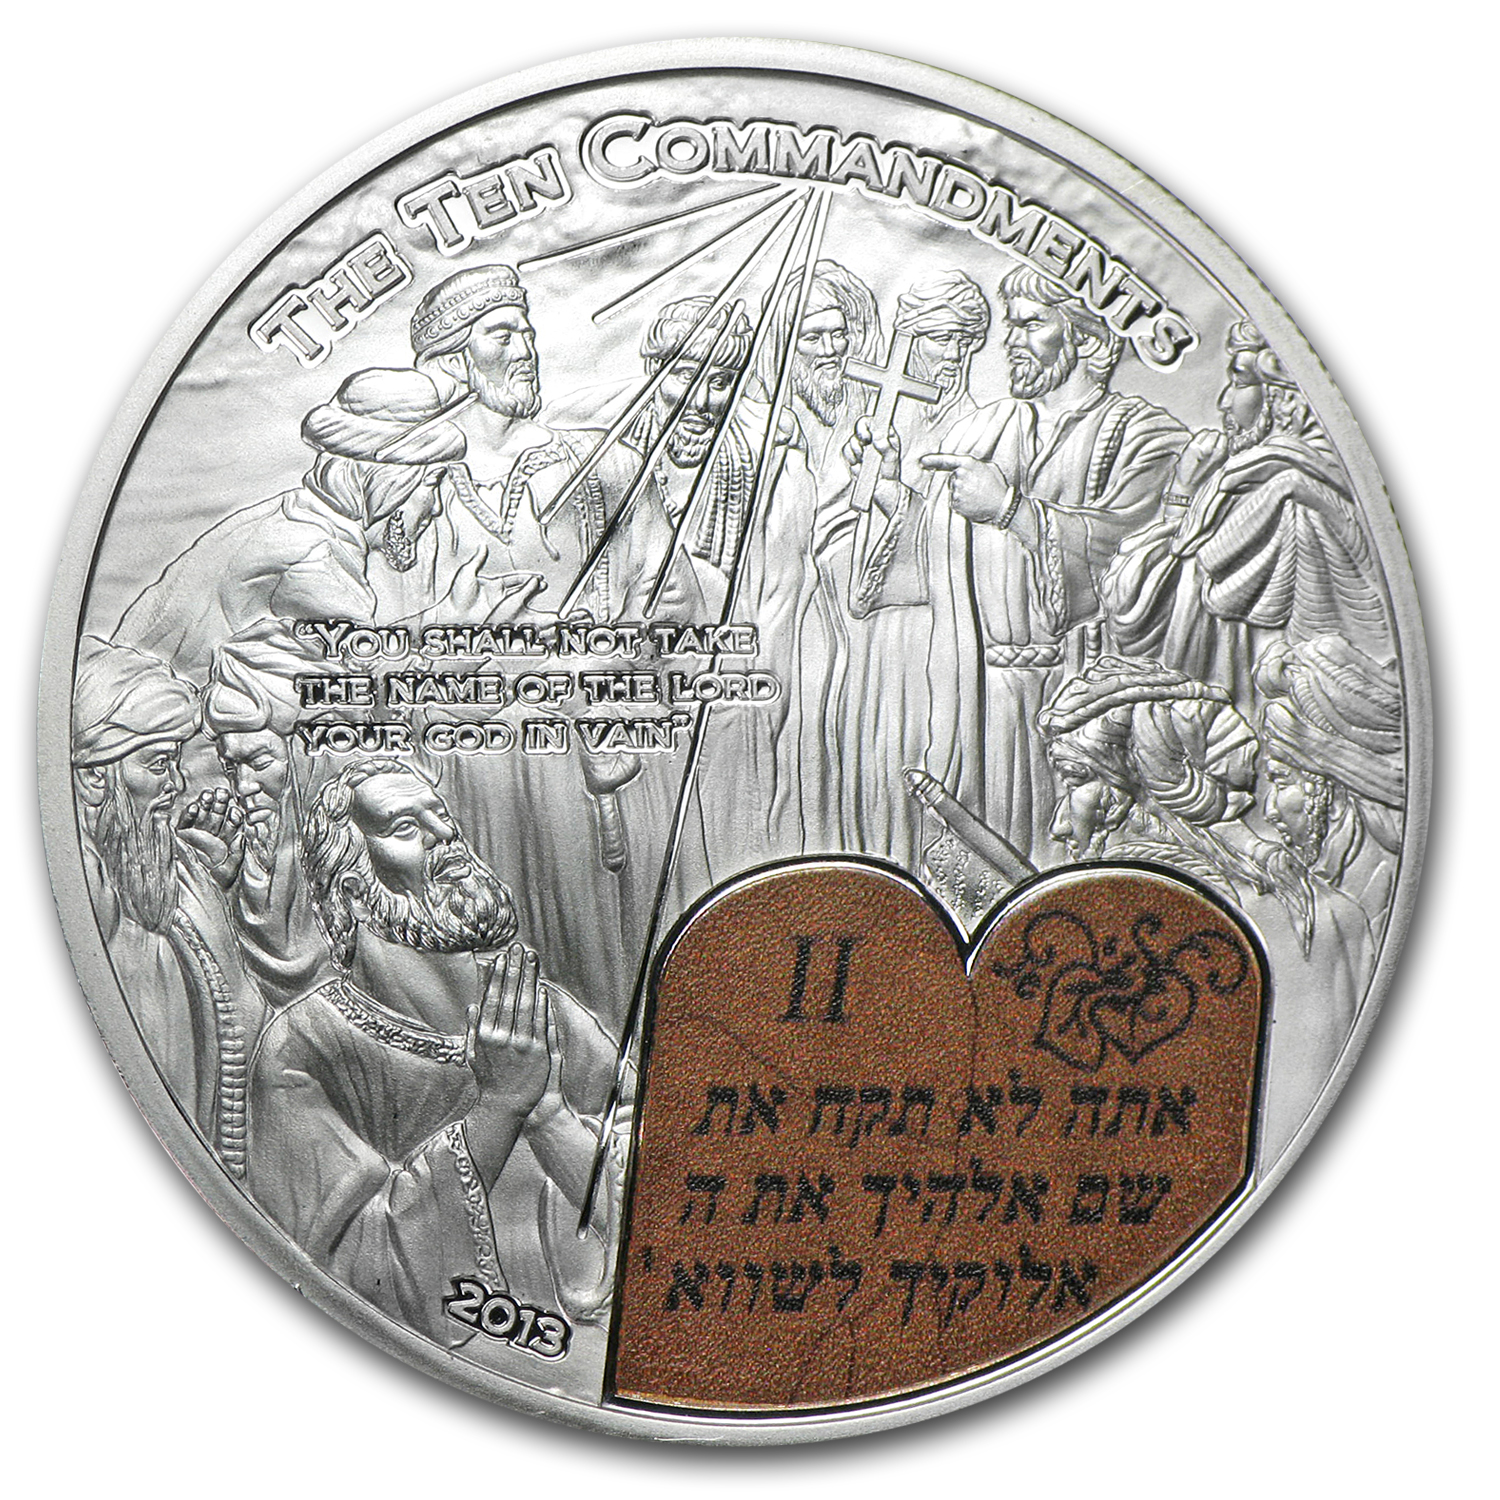 Palau 2013 Silver $2 Ten Commandments (Second Commandment)